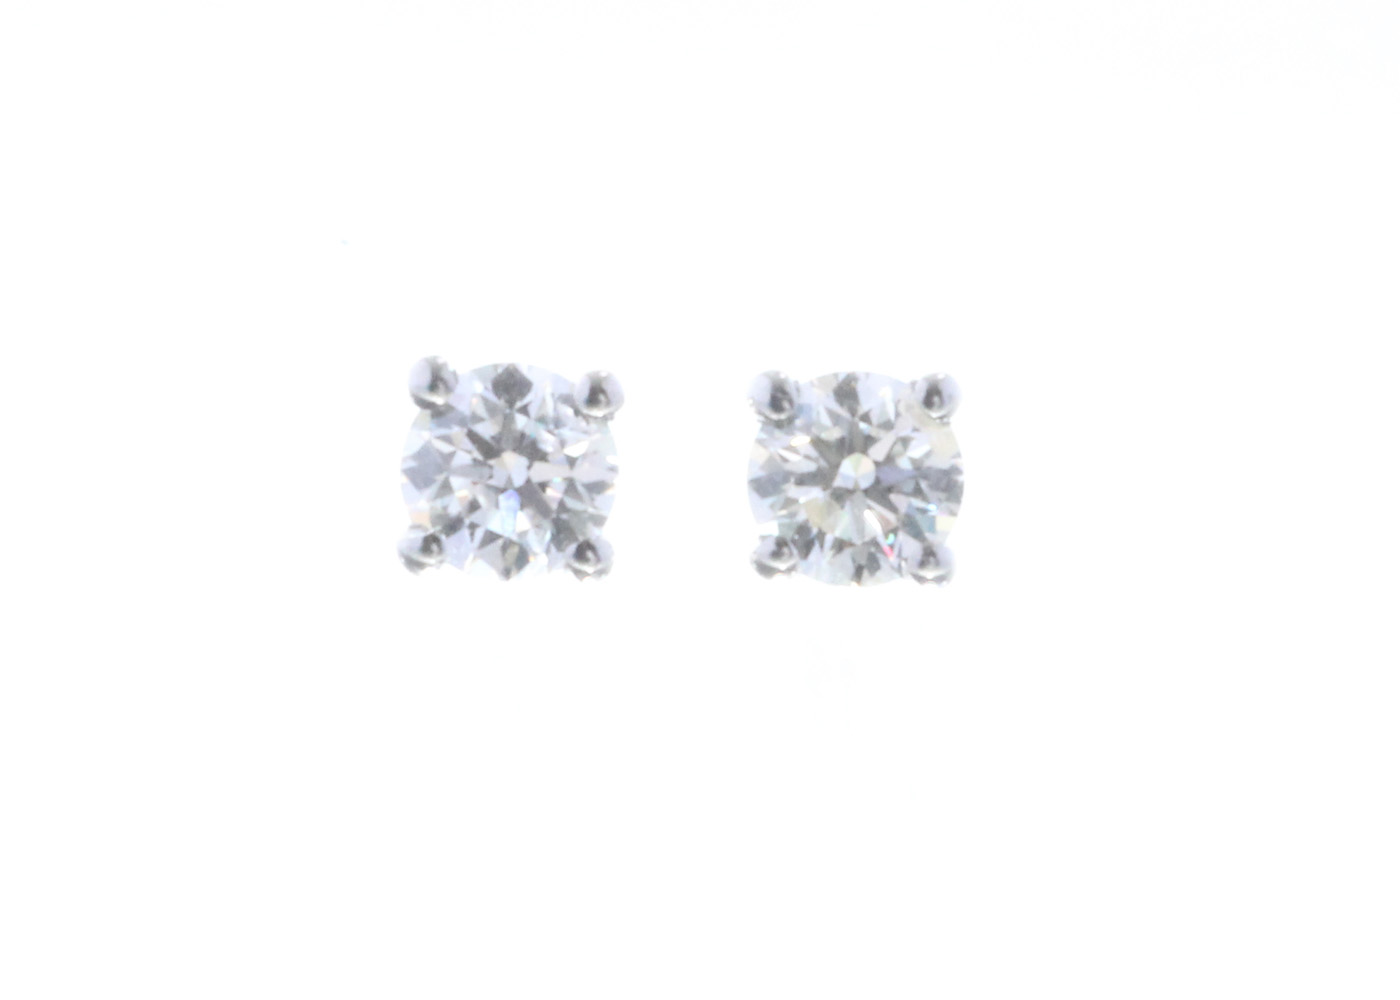 18ct White Gold Claw Set Diamond Earrings 0.40 Carats